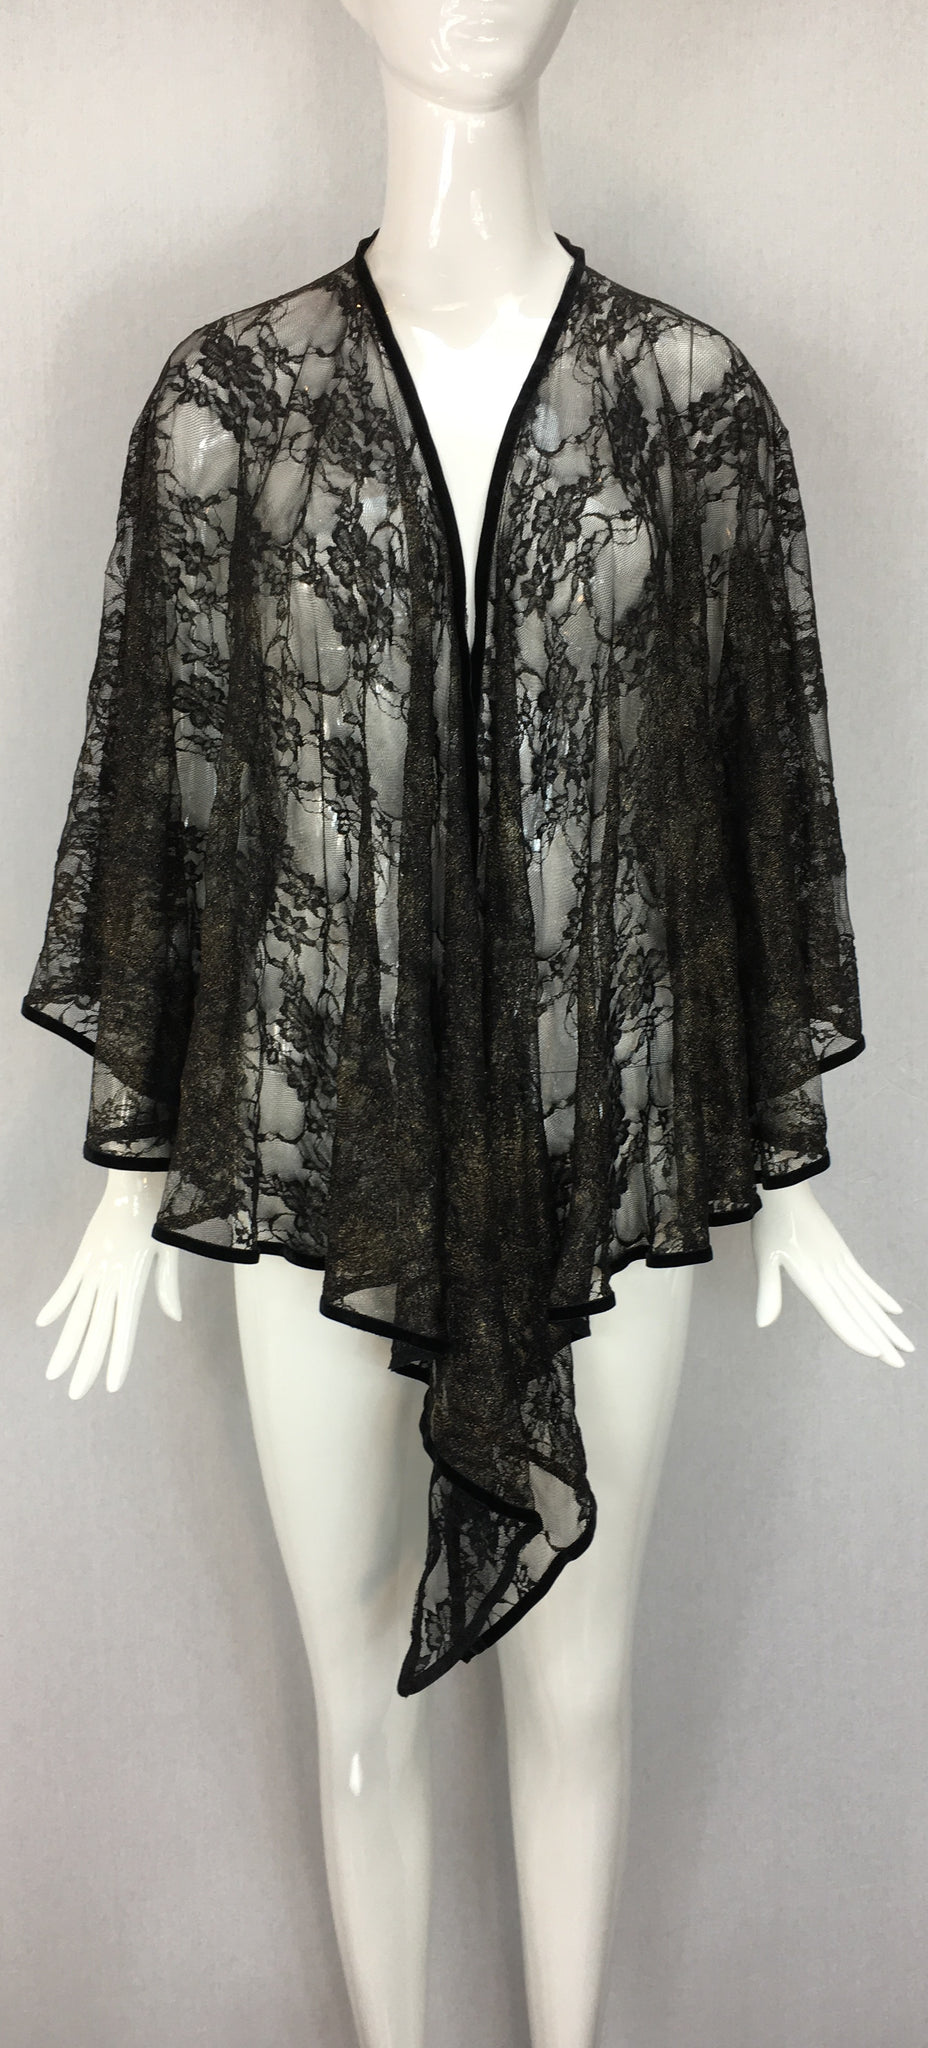 Janet Deleuse Lace and Velvet Wrap, SOLD